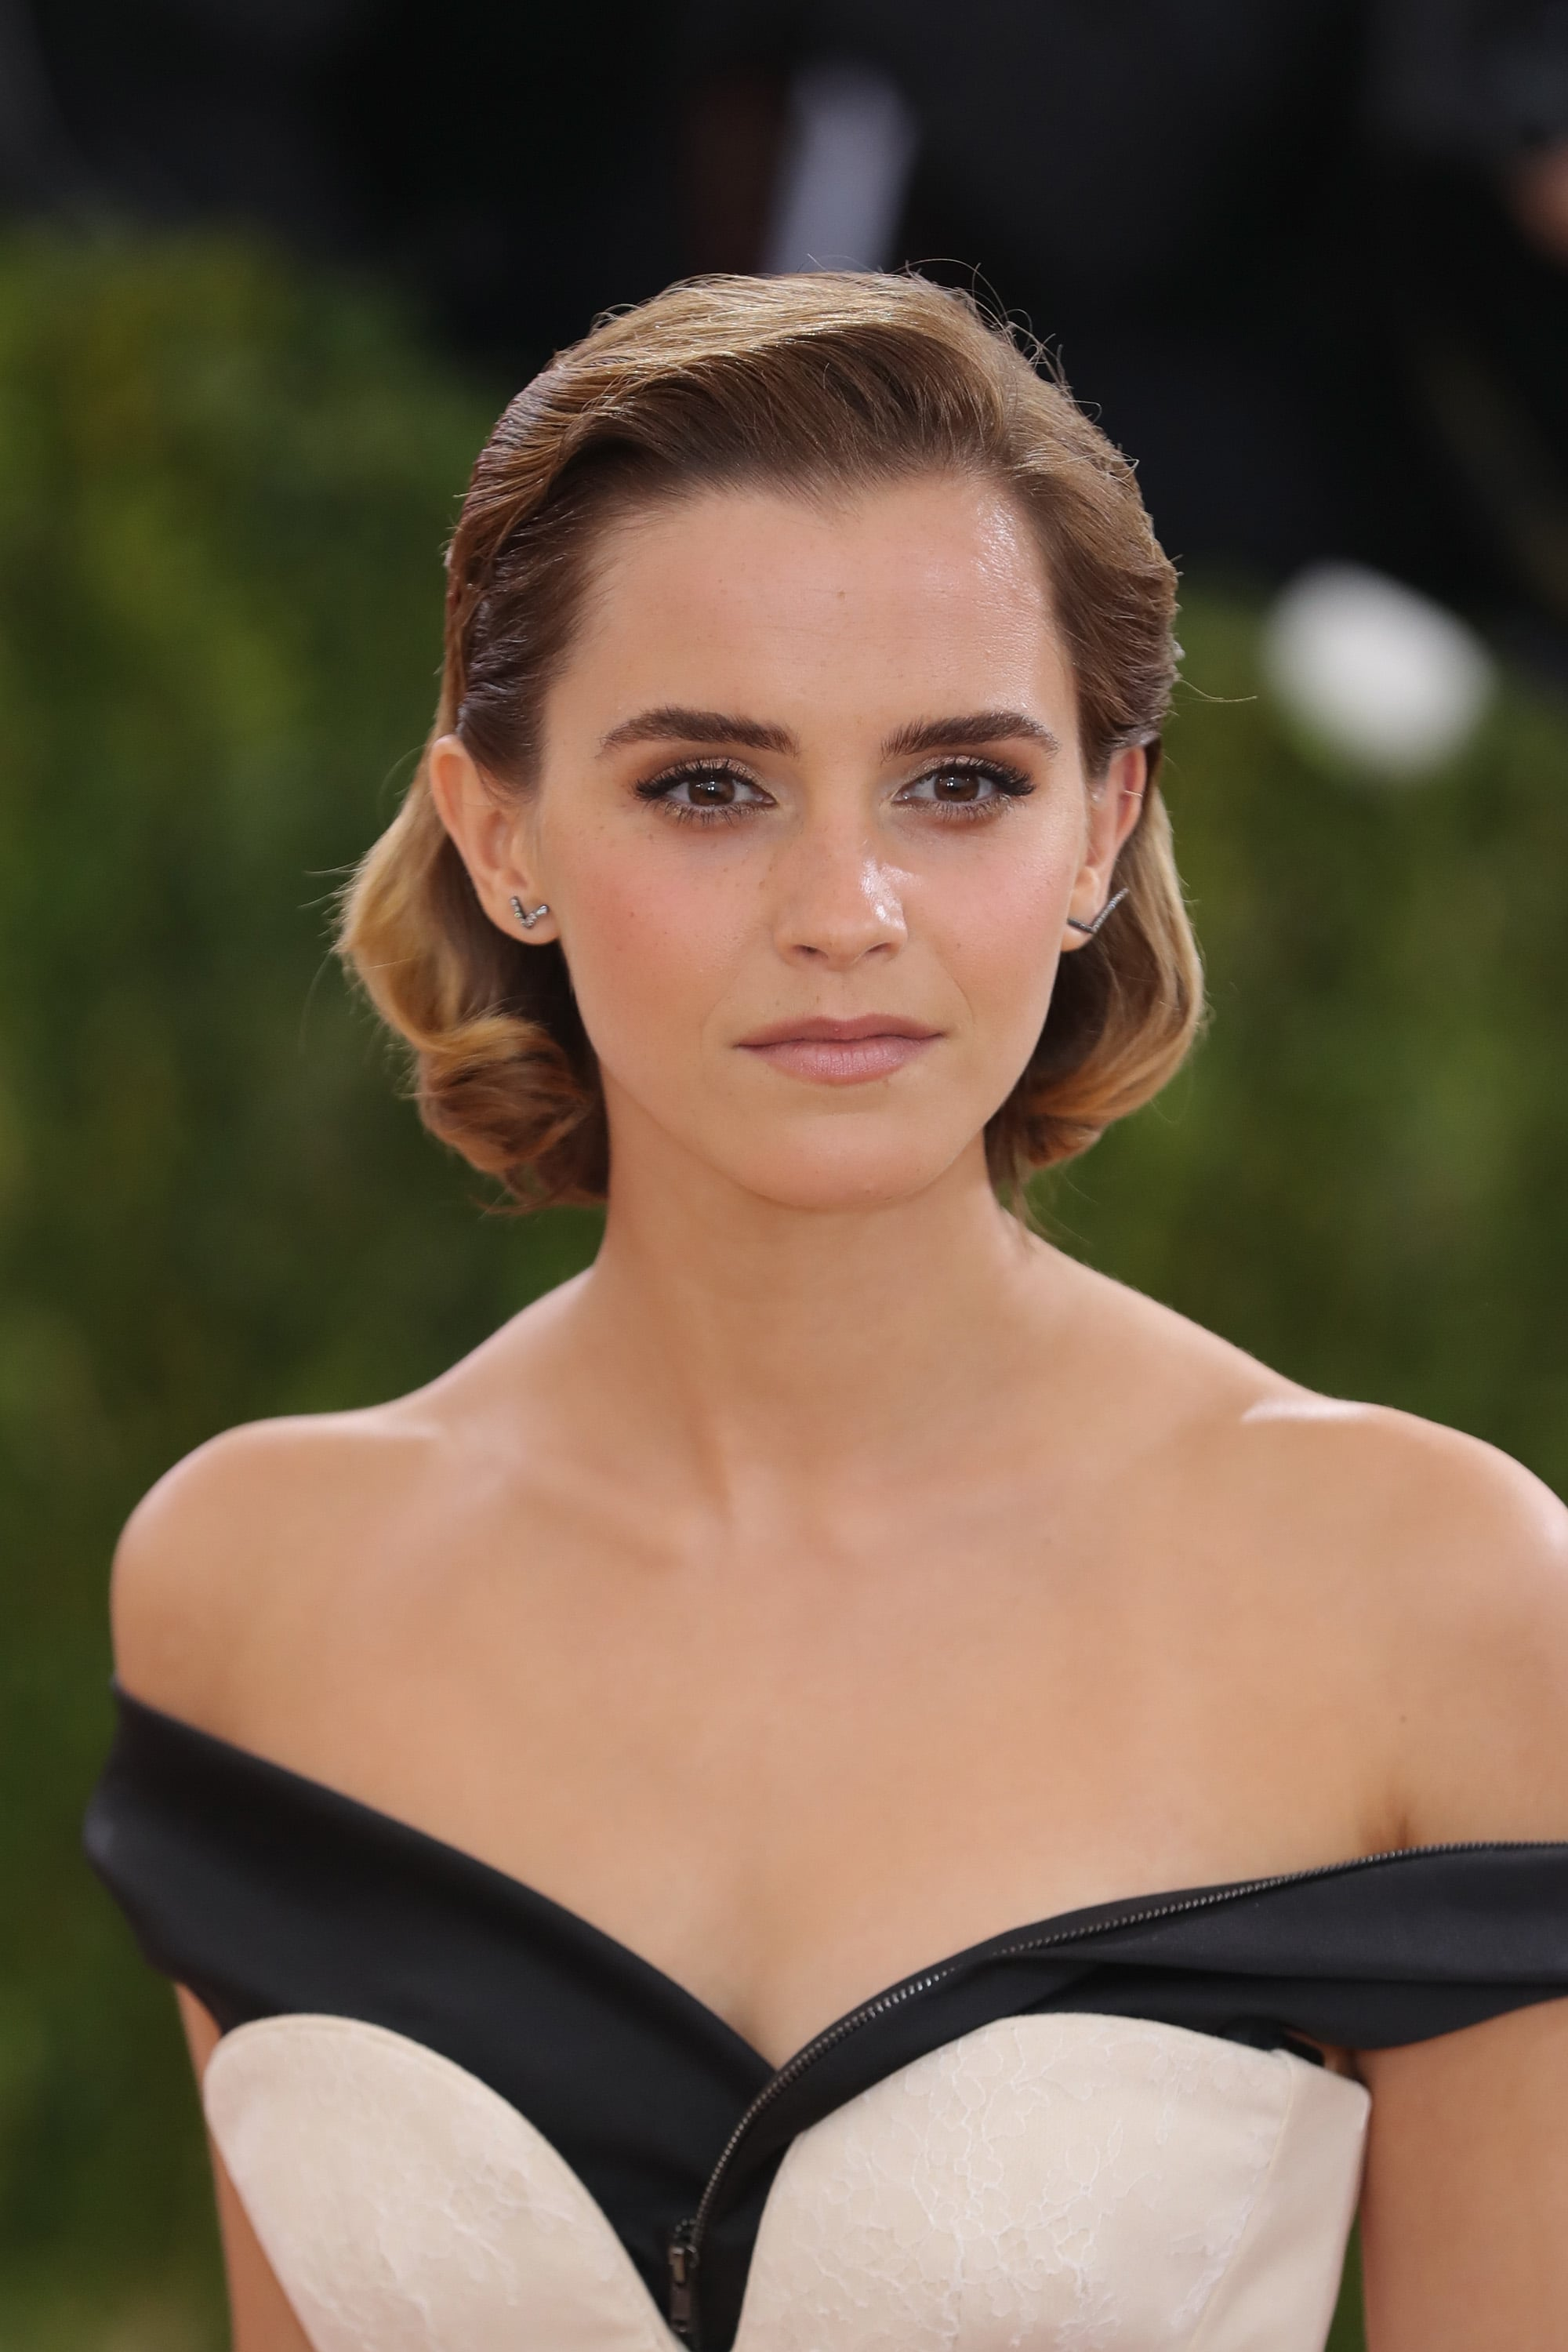 emma watson speaks out against sexual assault - the hollywood gossip